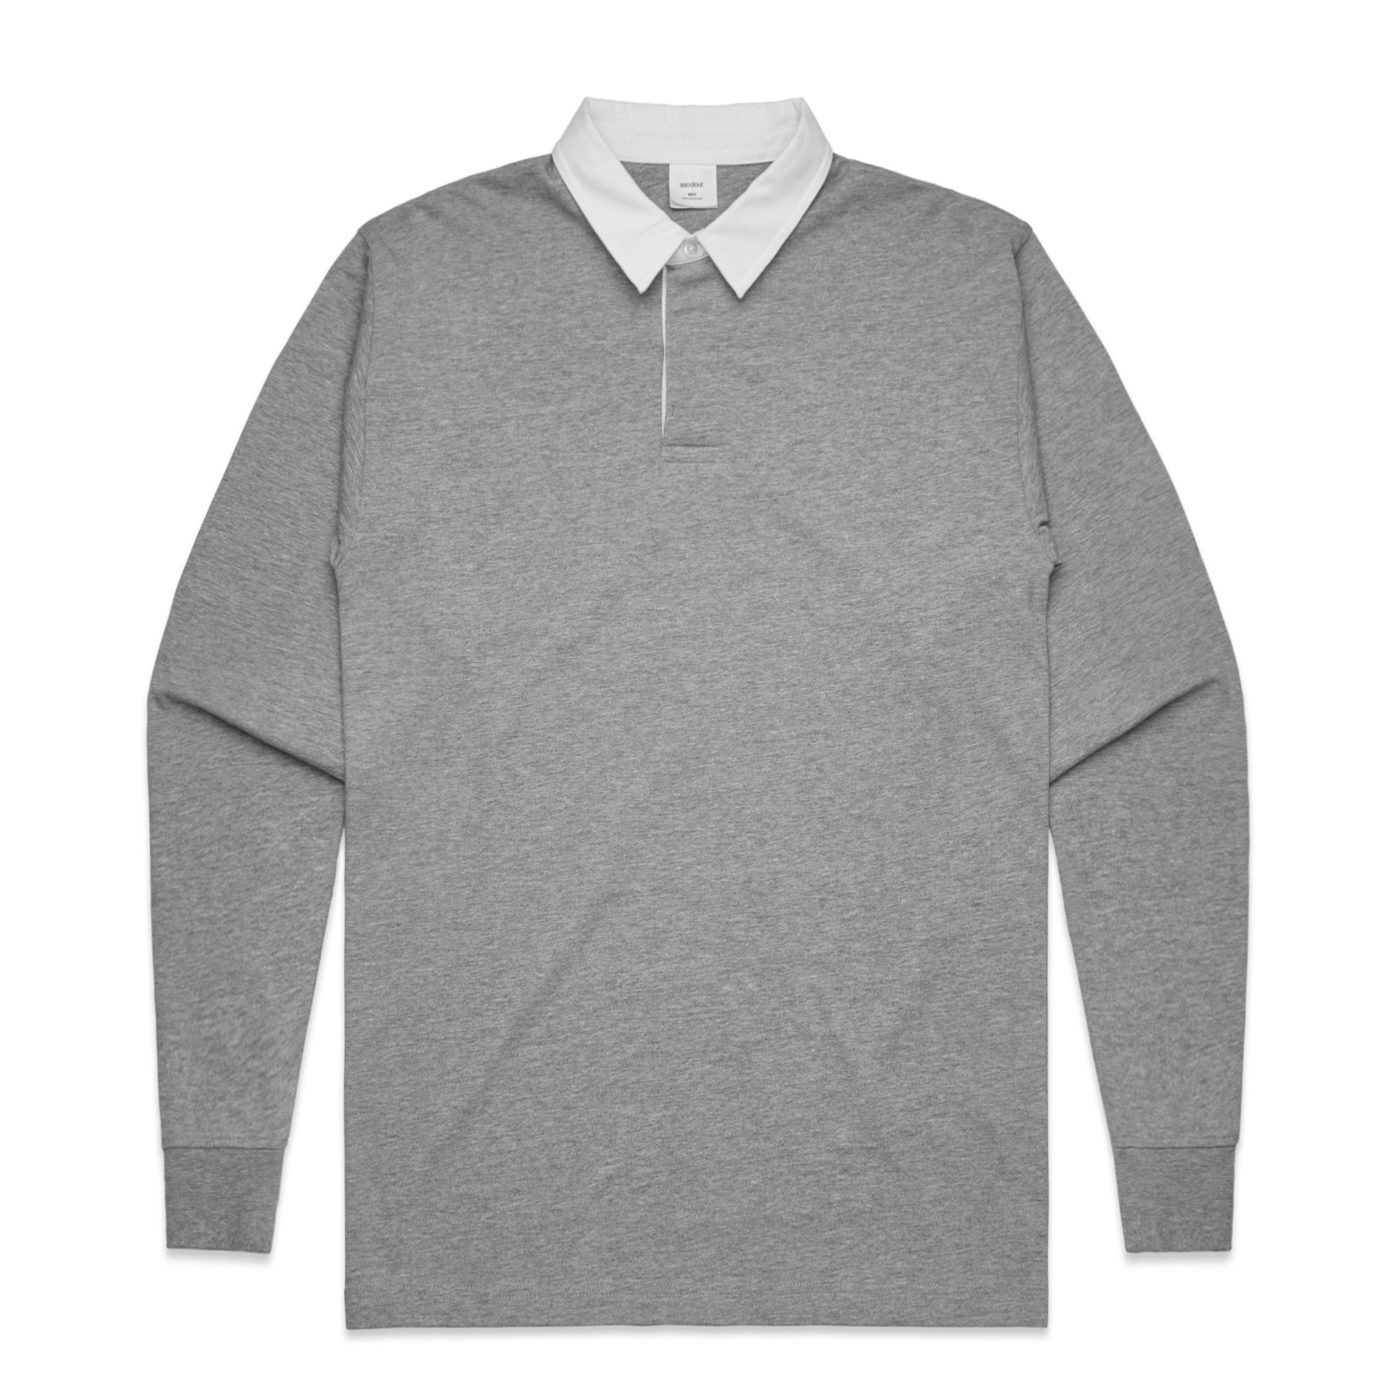 L/S Rugby jersey AS Colour Grey Marle